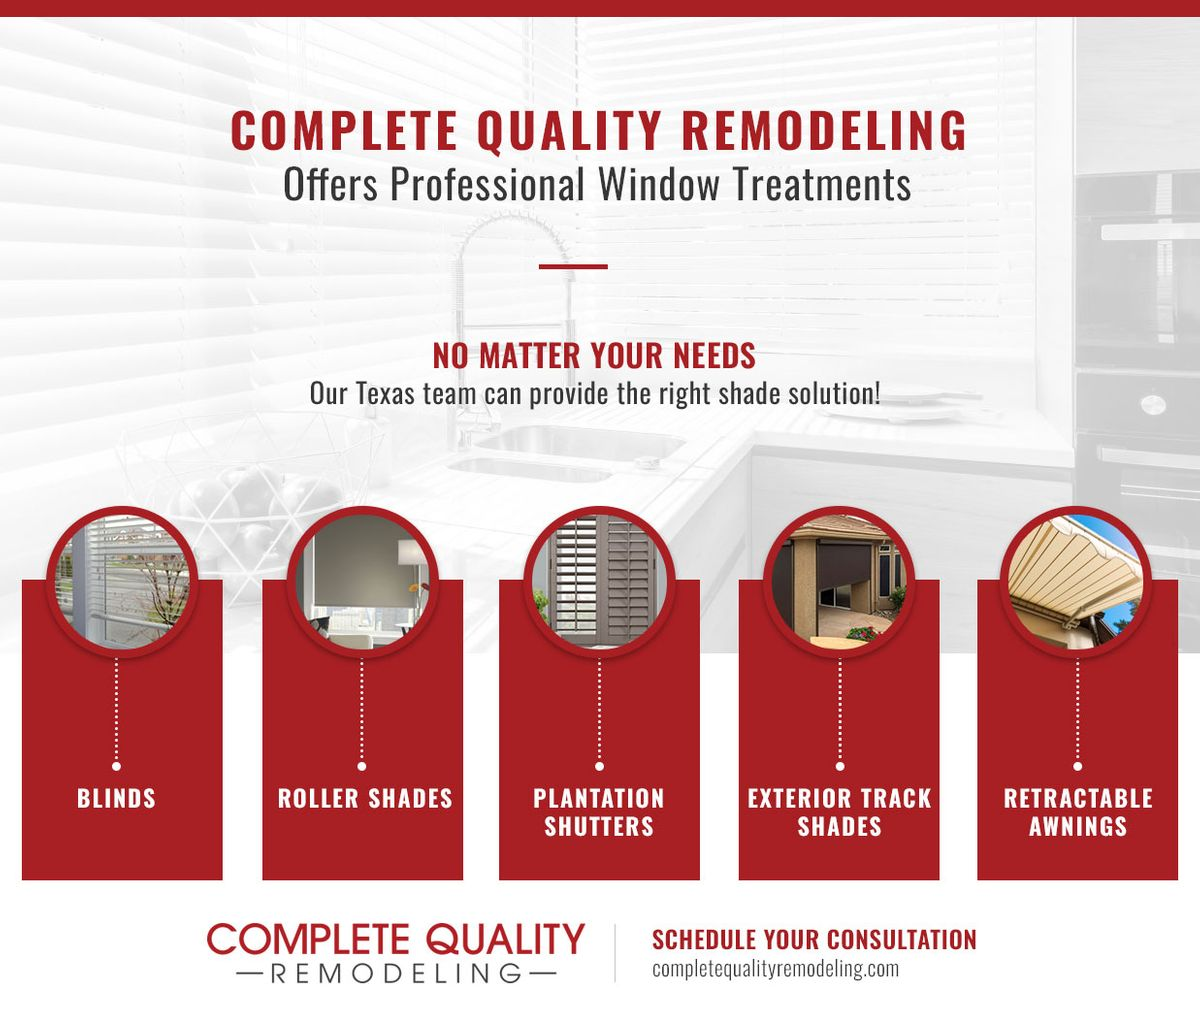 Complete-Quality-Remodeling-Offers-Professional-Window-Treatments.jpg